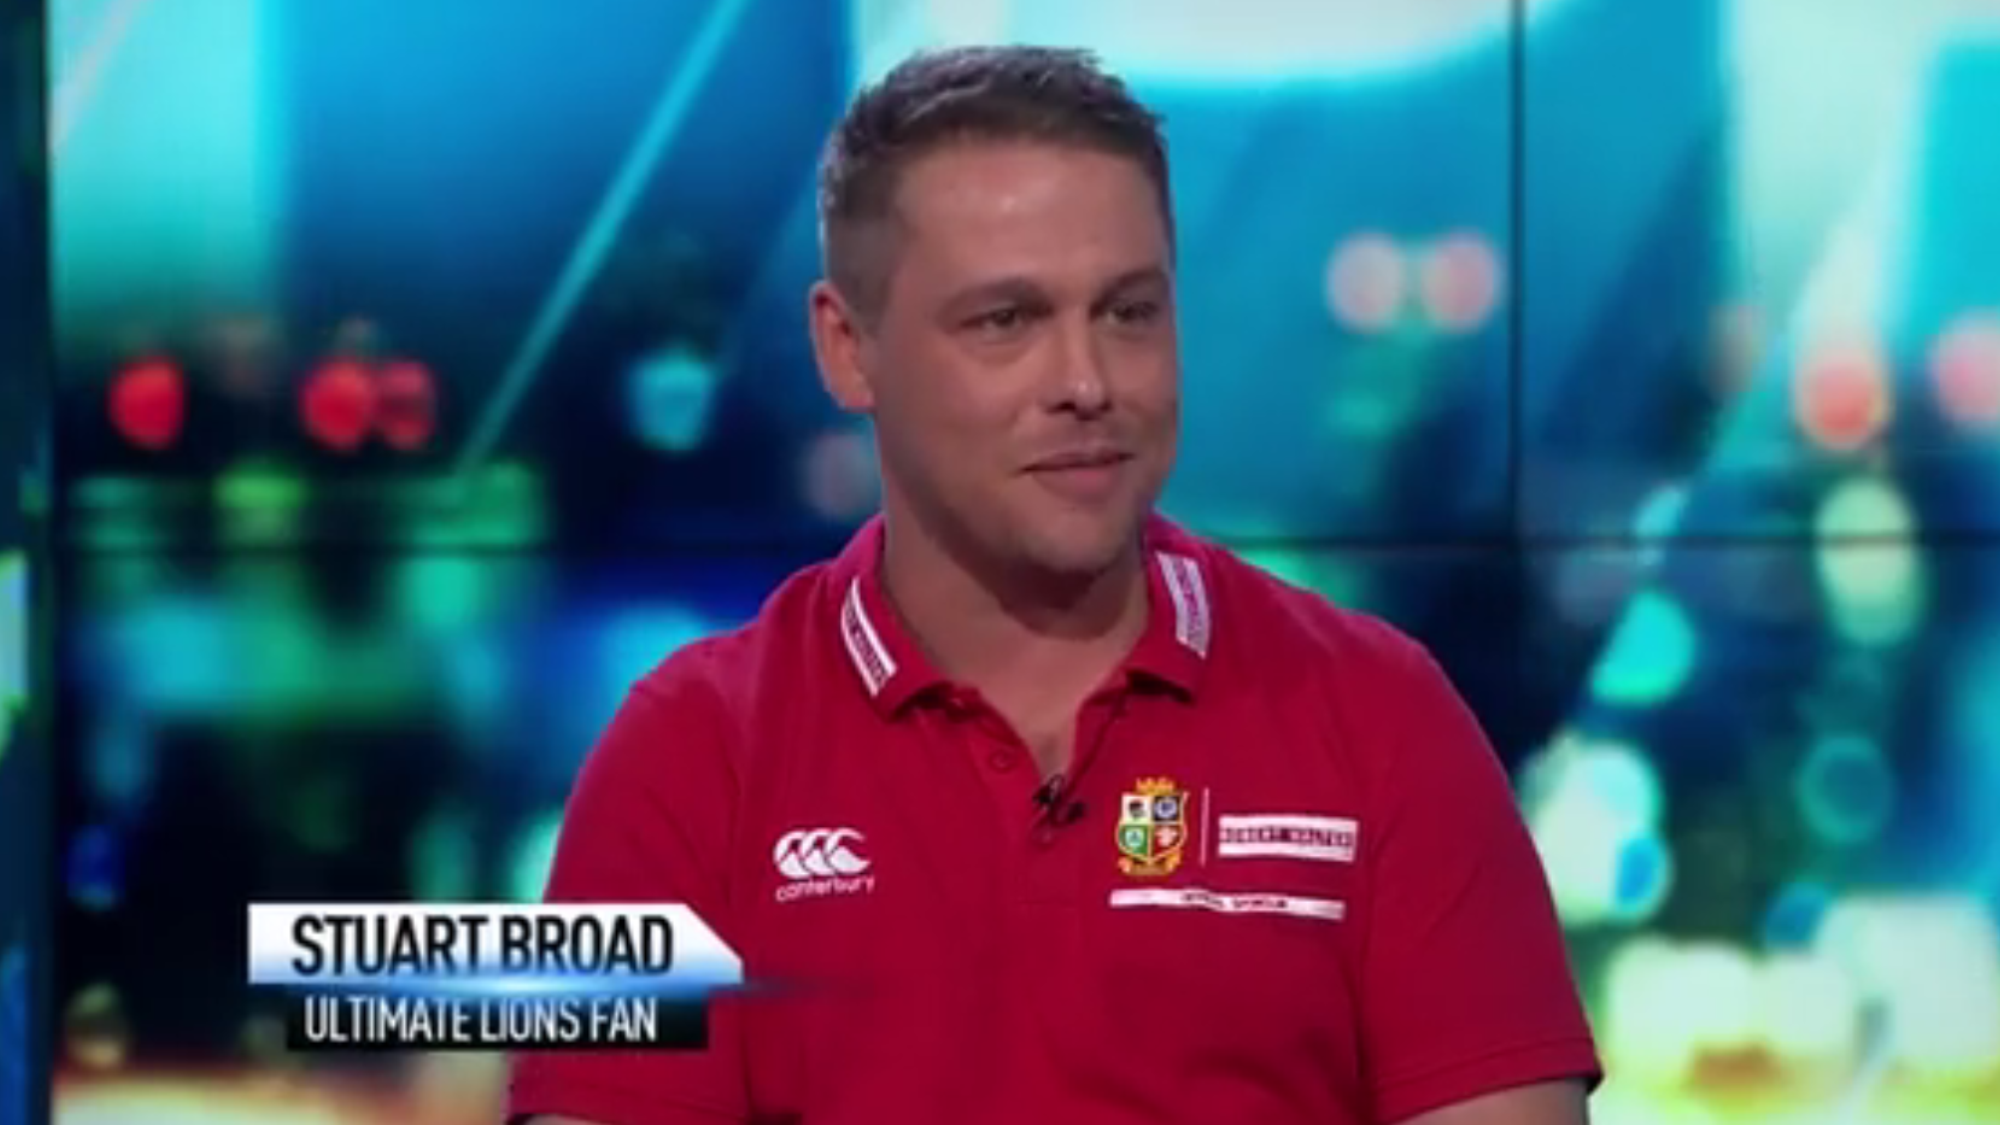 Ultimate Lions Fan Stuart Broad shines on New Zealand Television